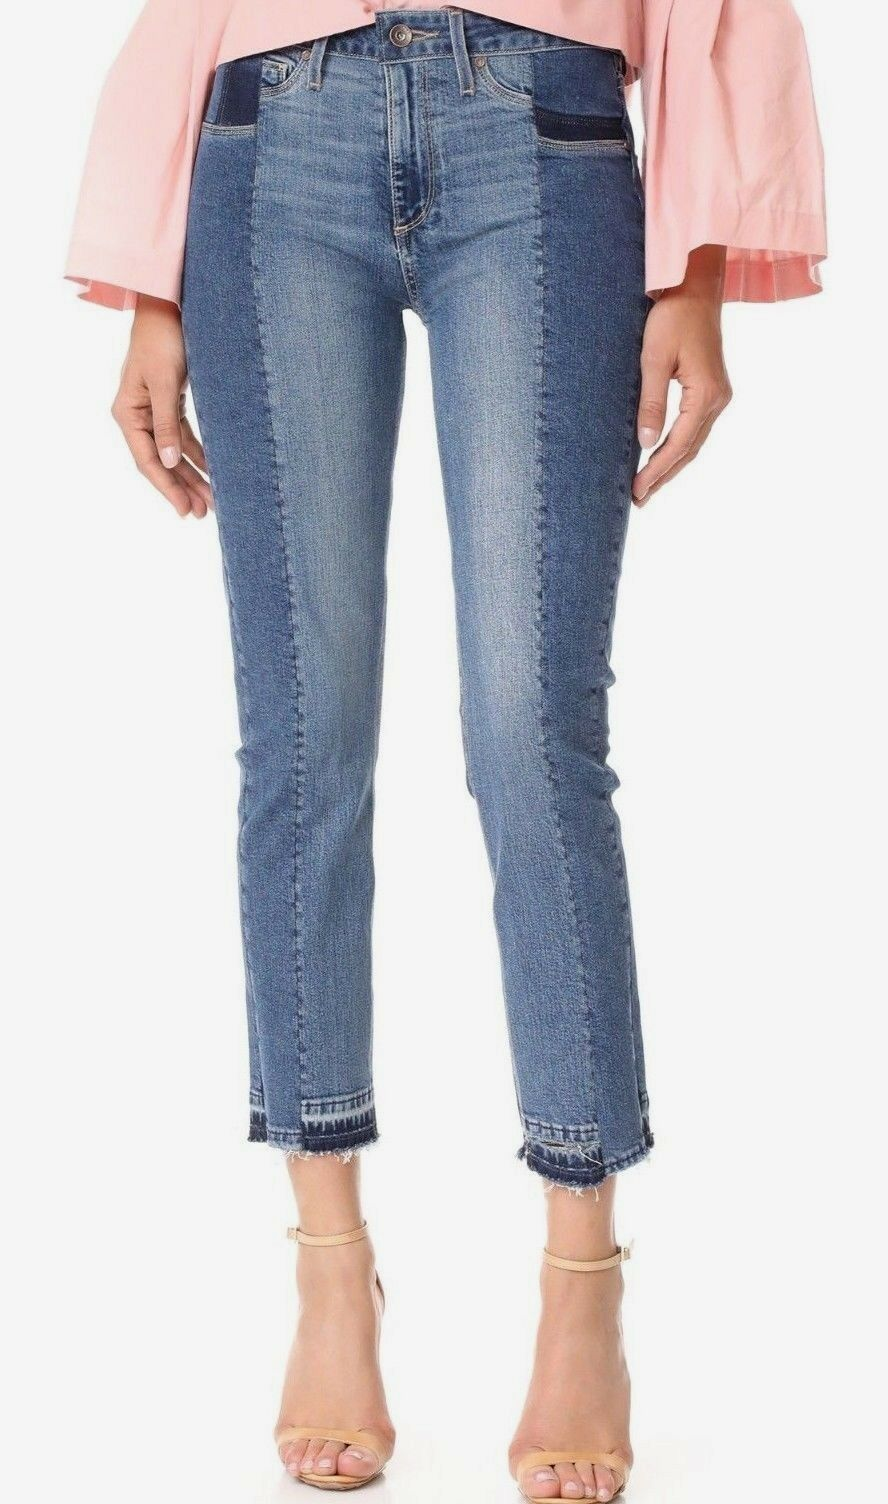 325 NWT PAIGE Sz26 TAYLOR PATCHWORK RAW ANKLE HI-RISE STRAIGHT JEANS LYLA blueE